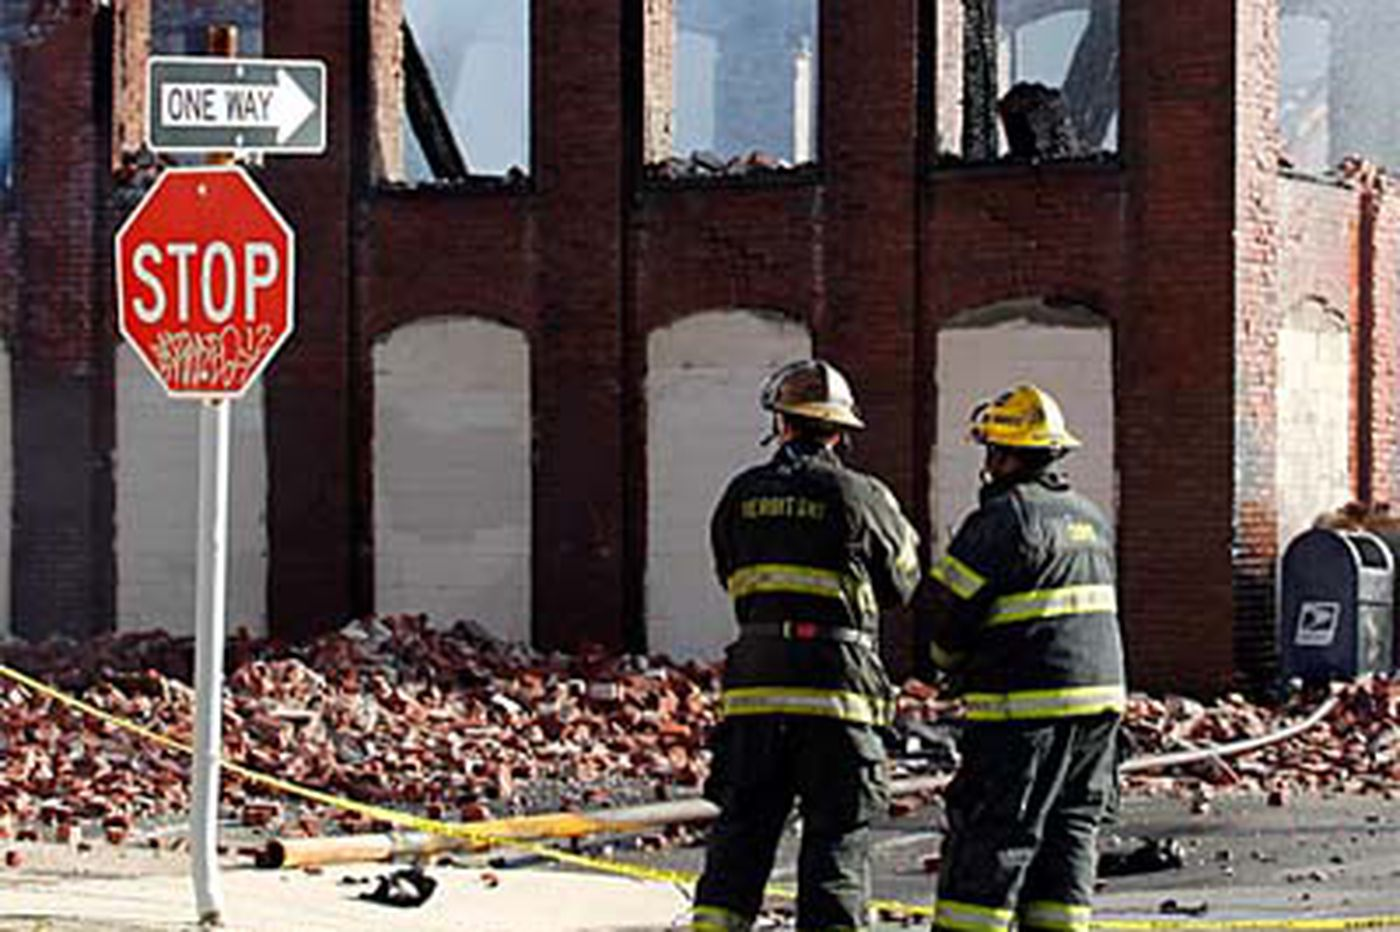 Fire deaths may spur needed action